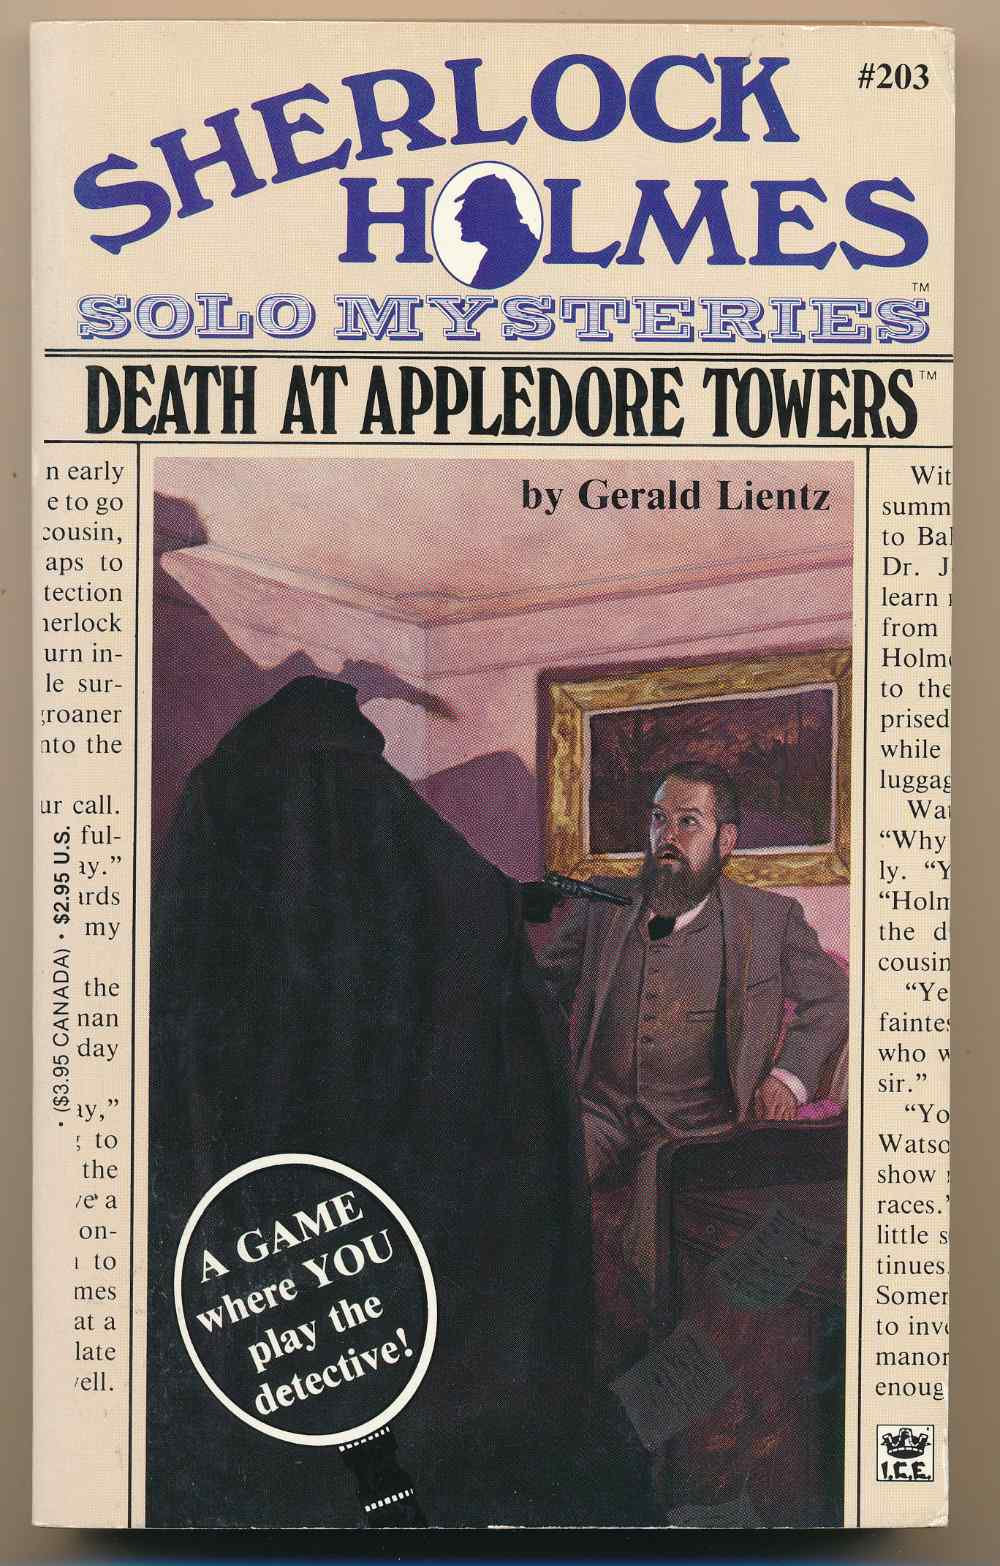 Death at Appledore Towers